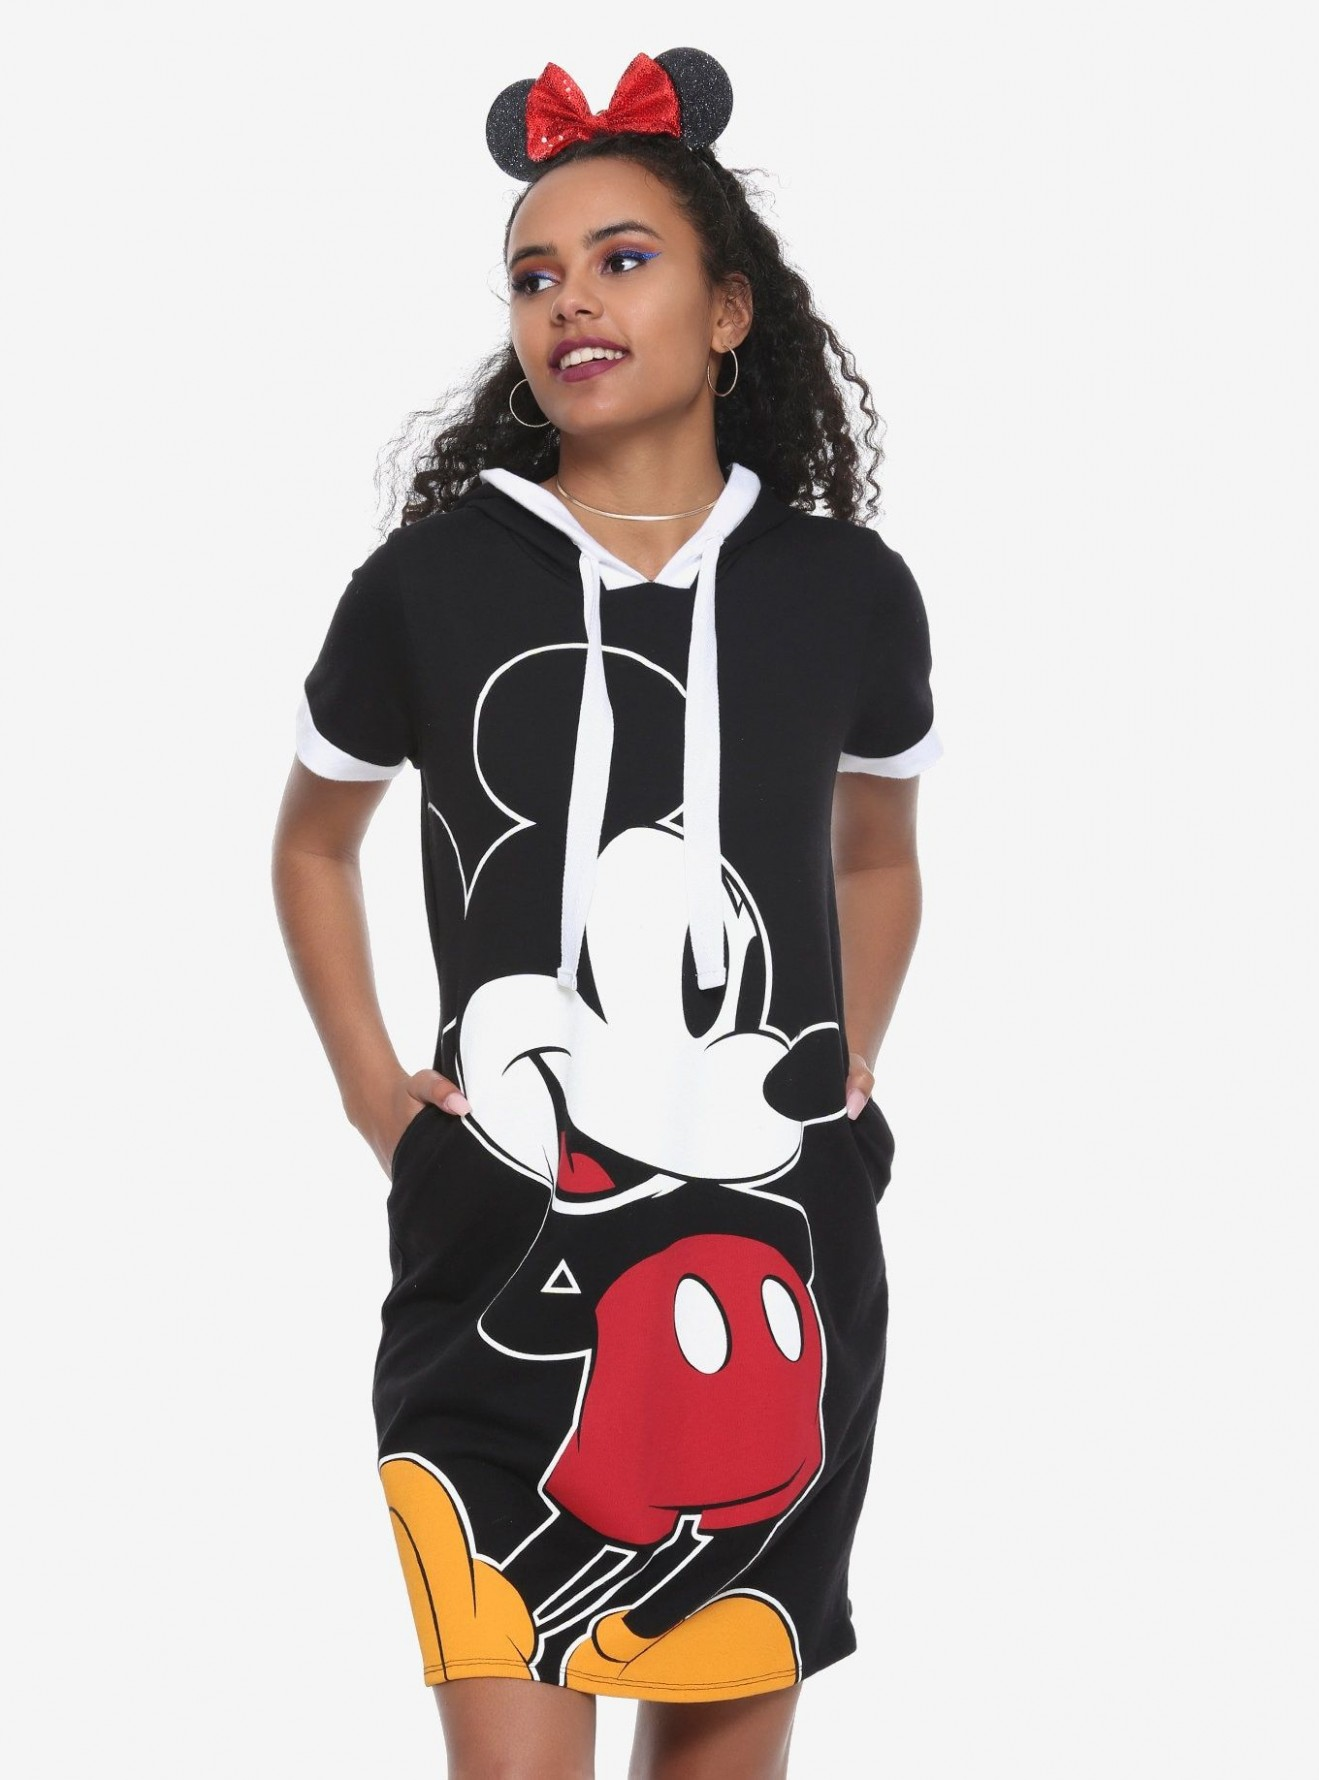 disney mickey mouse face hooded dress mickey mouse dress, mouse mickey mouse kleidung damen